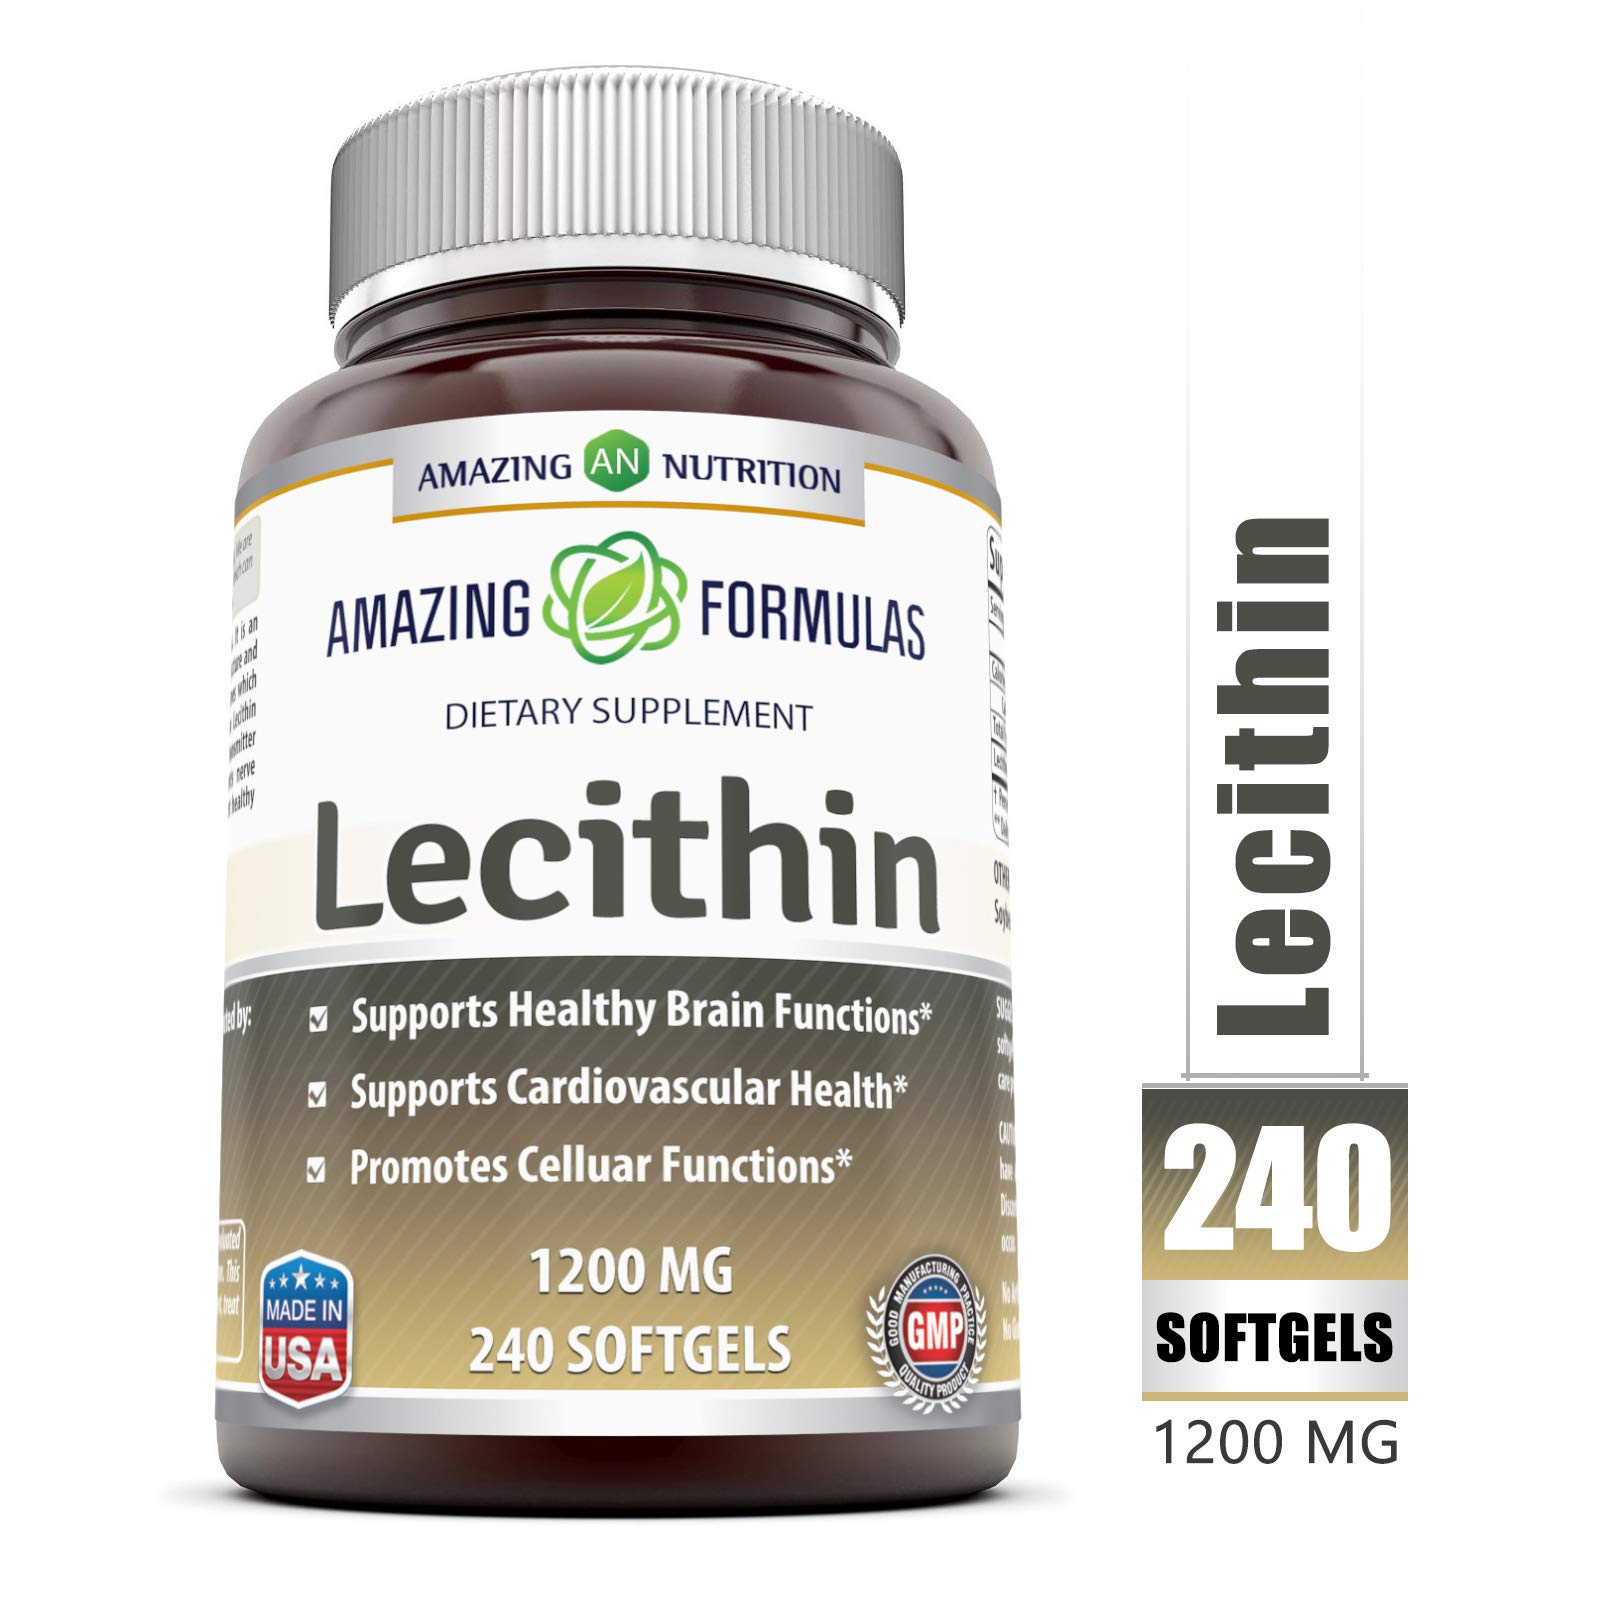 Amazing Formulas Lecithin Dietary Supplement * 1200 mg High Potency Lecithin Softgels (Non-GMO) * Promotes Brain & Cardiovascular Health * Aids in Cellular Activities * 240 Softgels by Amazing Nutrition